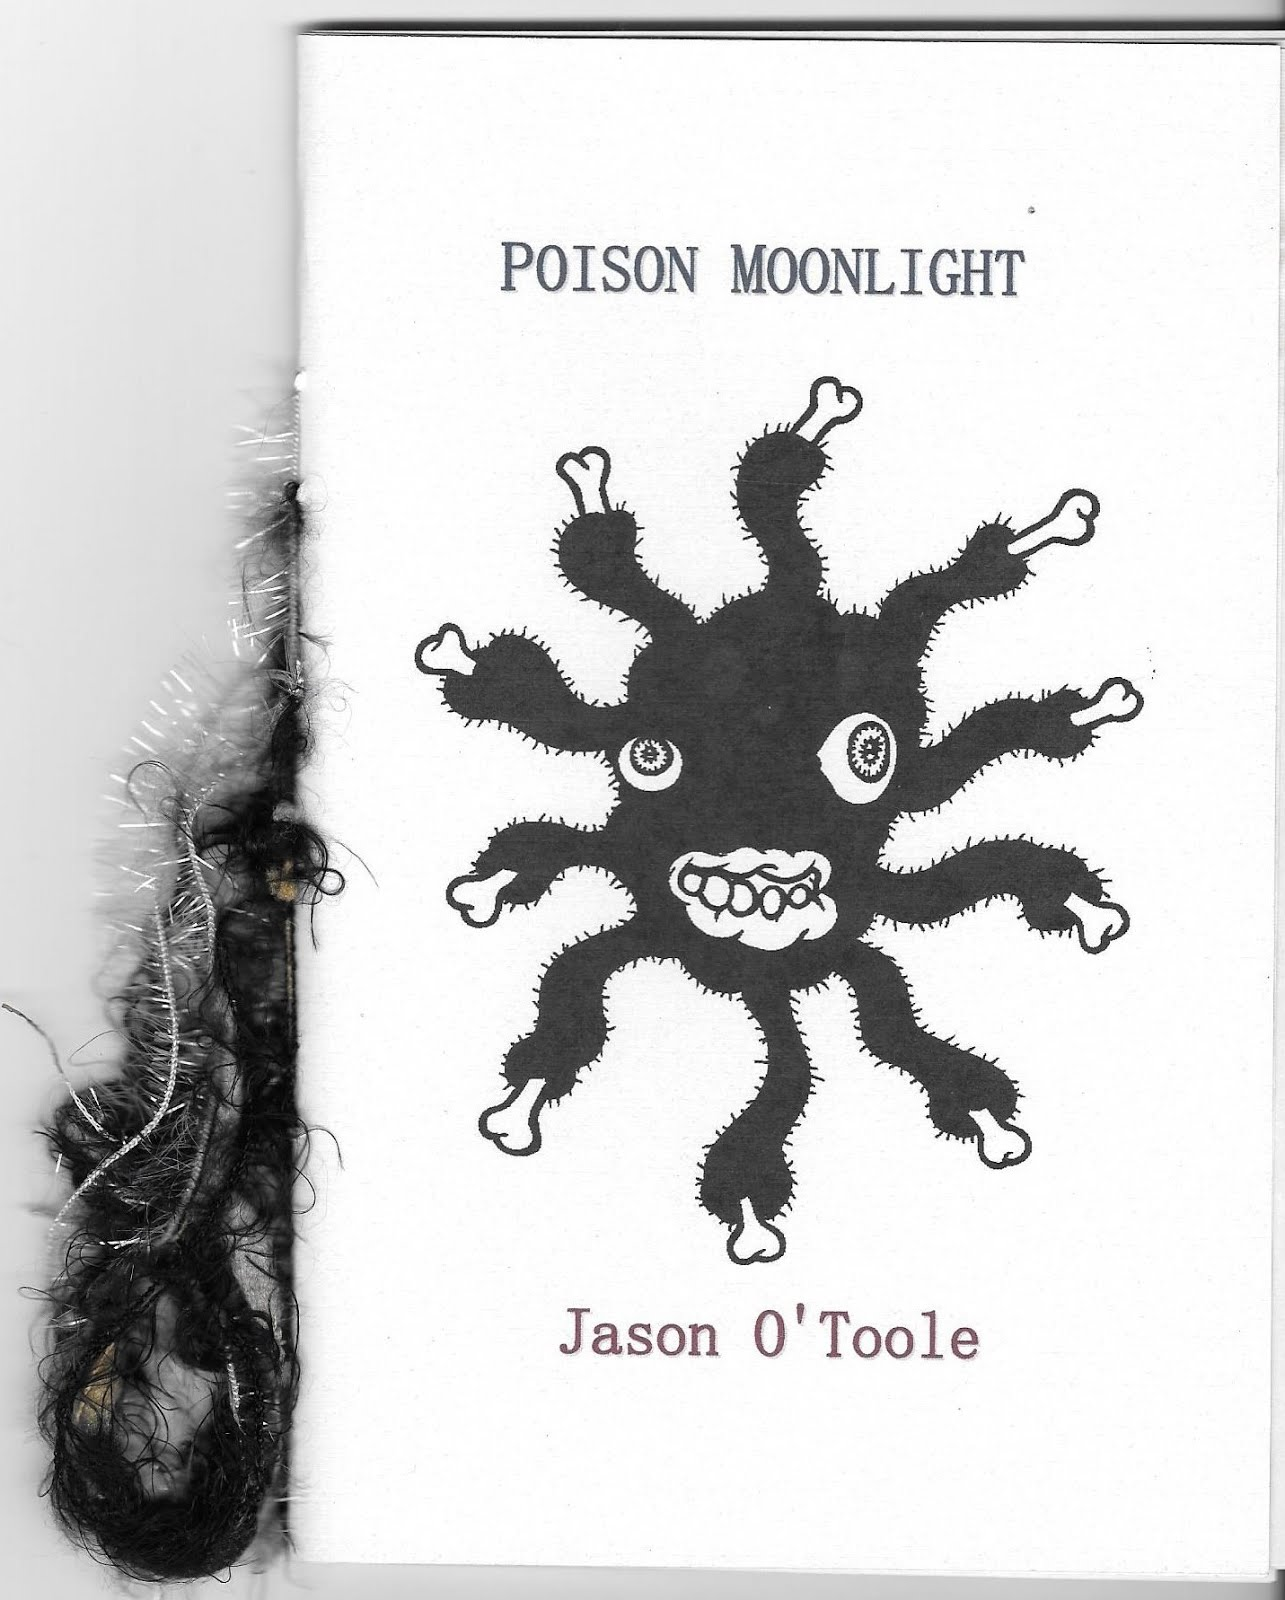 POISON MOONLIGHT by Jason O'Toole